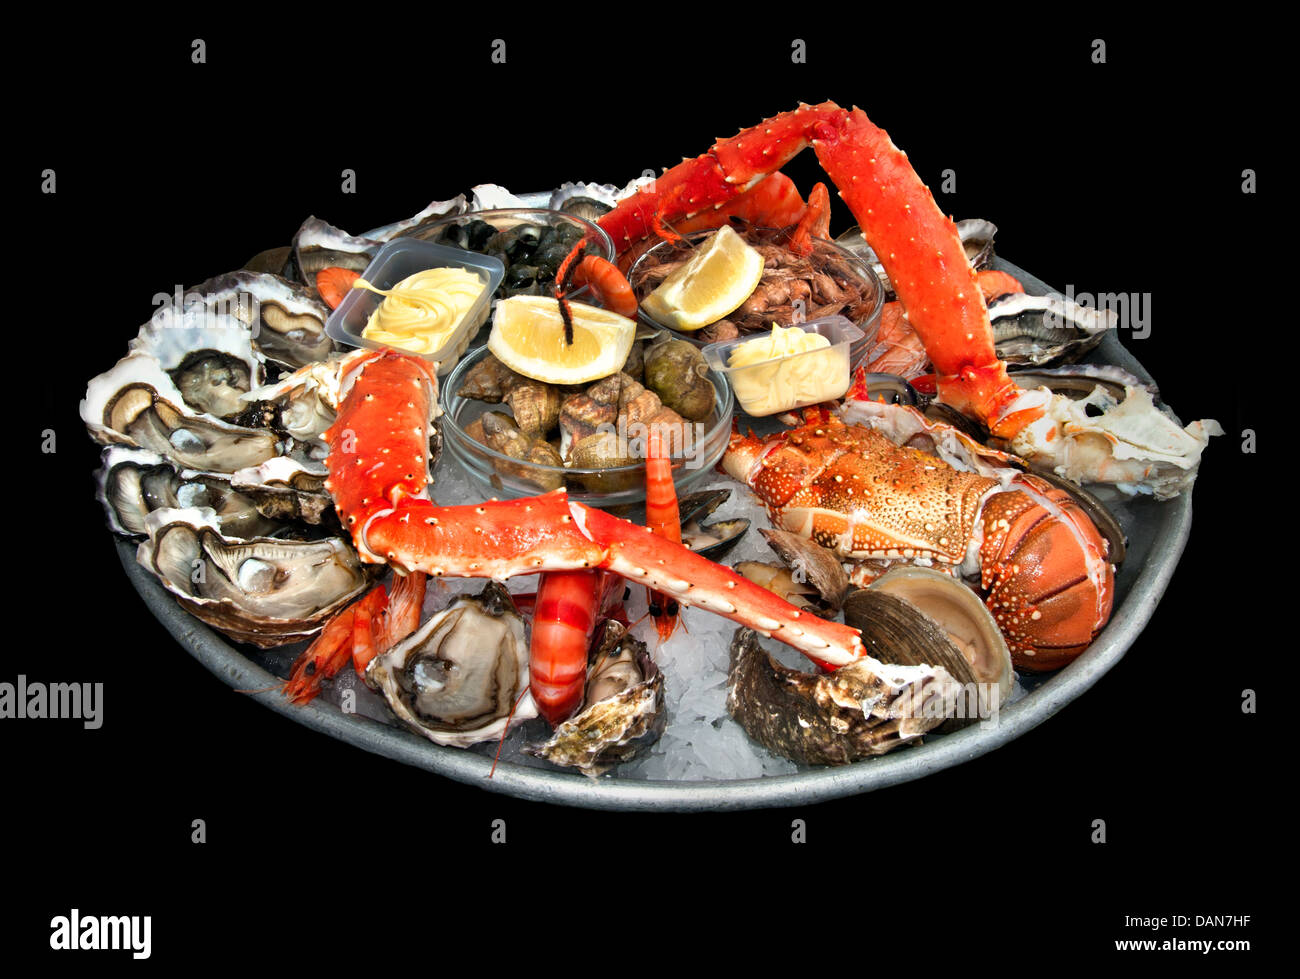 fruits de mer french seafood oysters shrimp lobster periwinkle